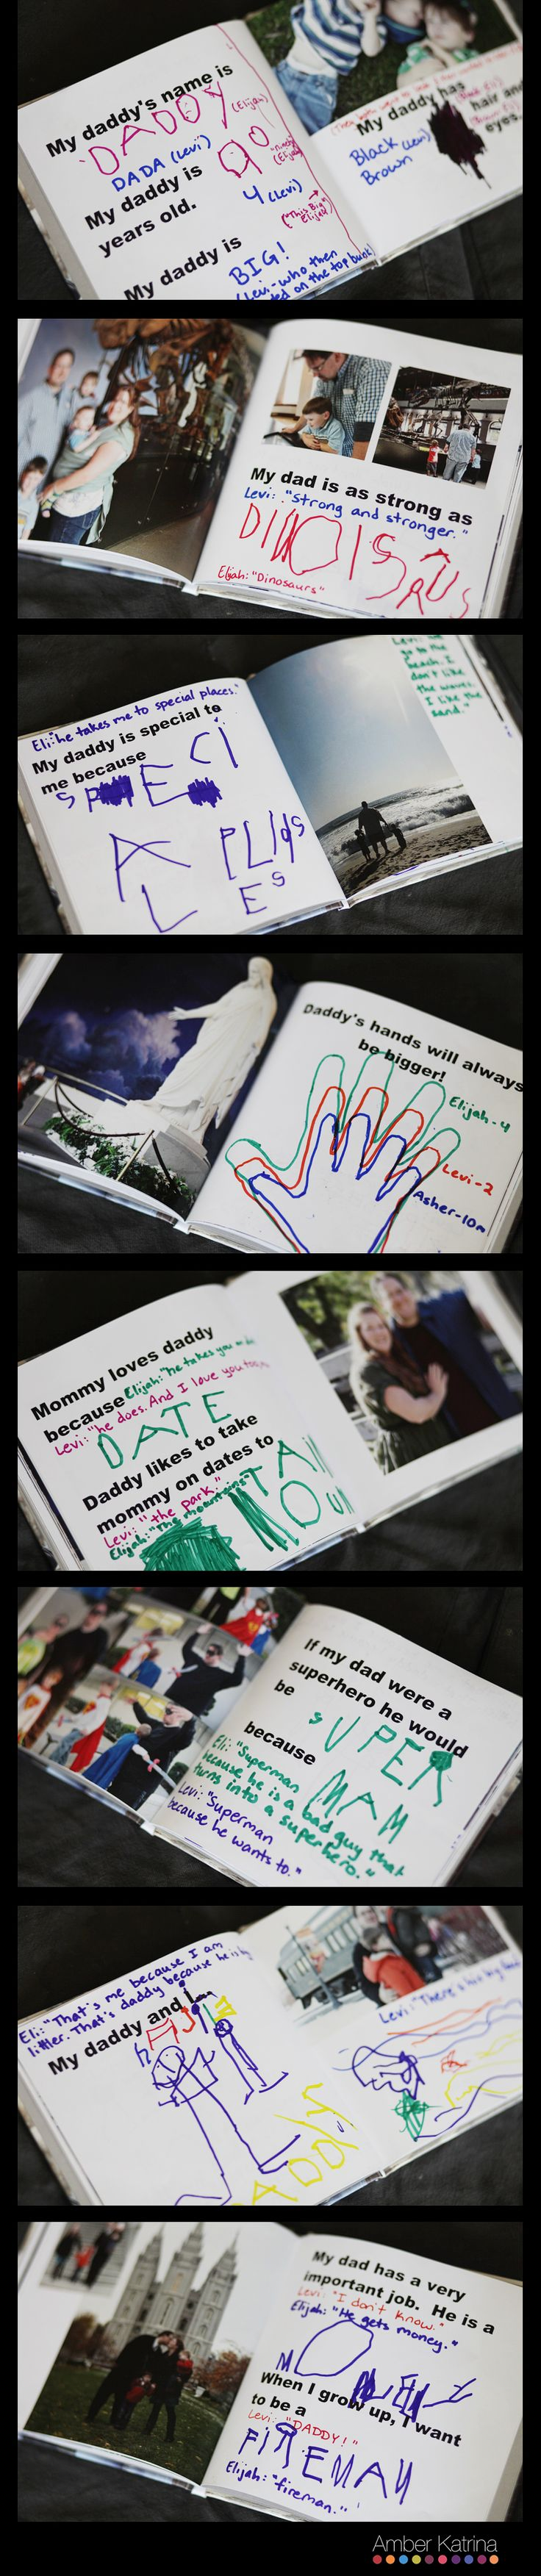 father's day photo album book for kids to fill-in answers about their dad